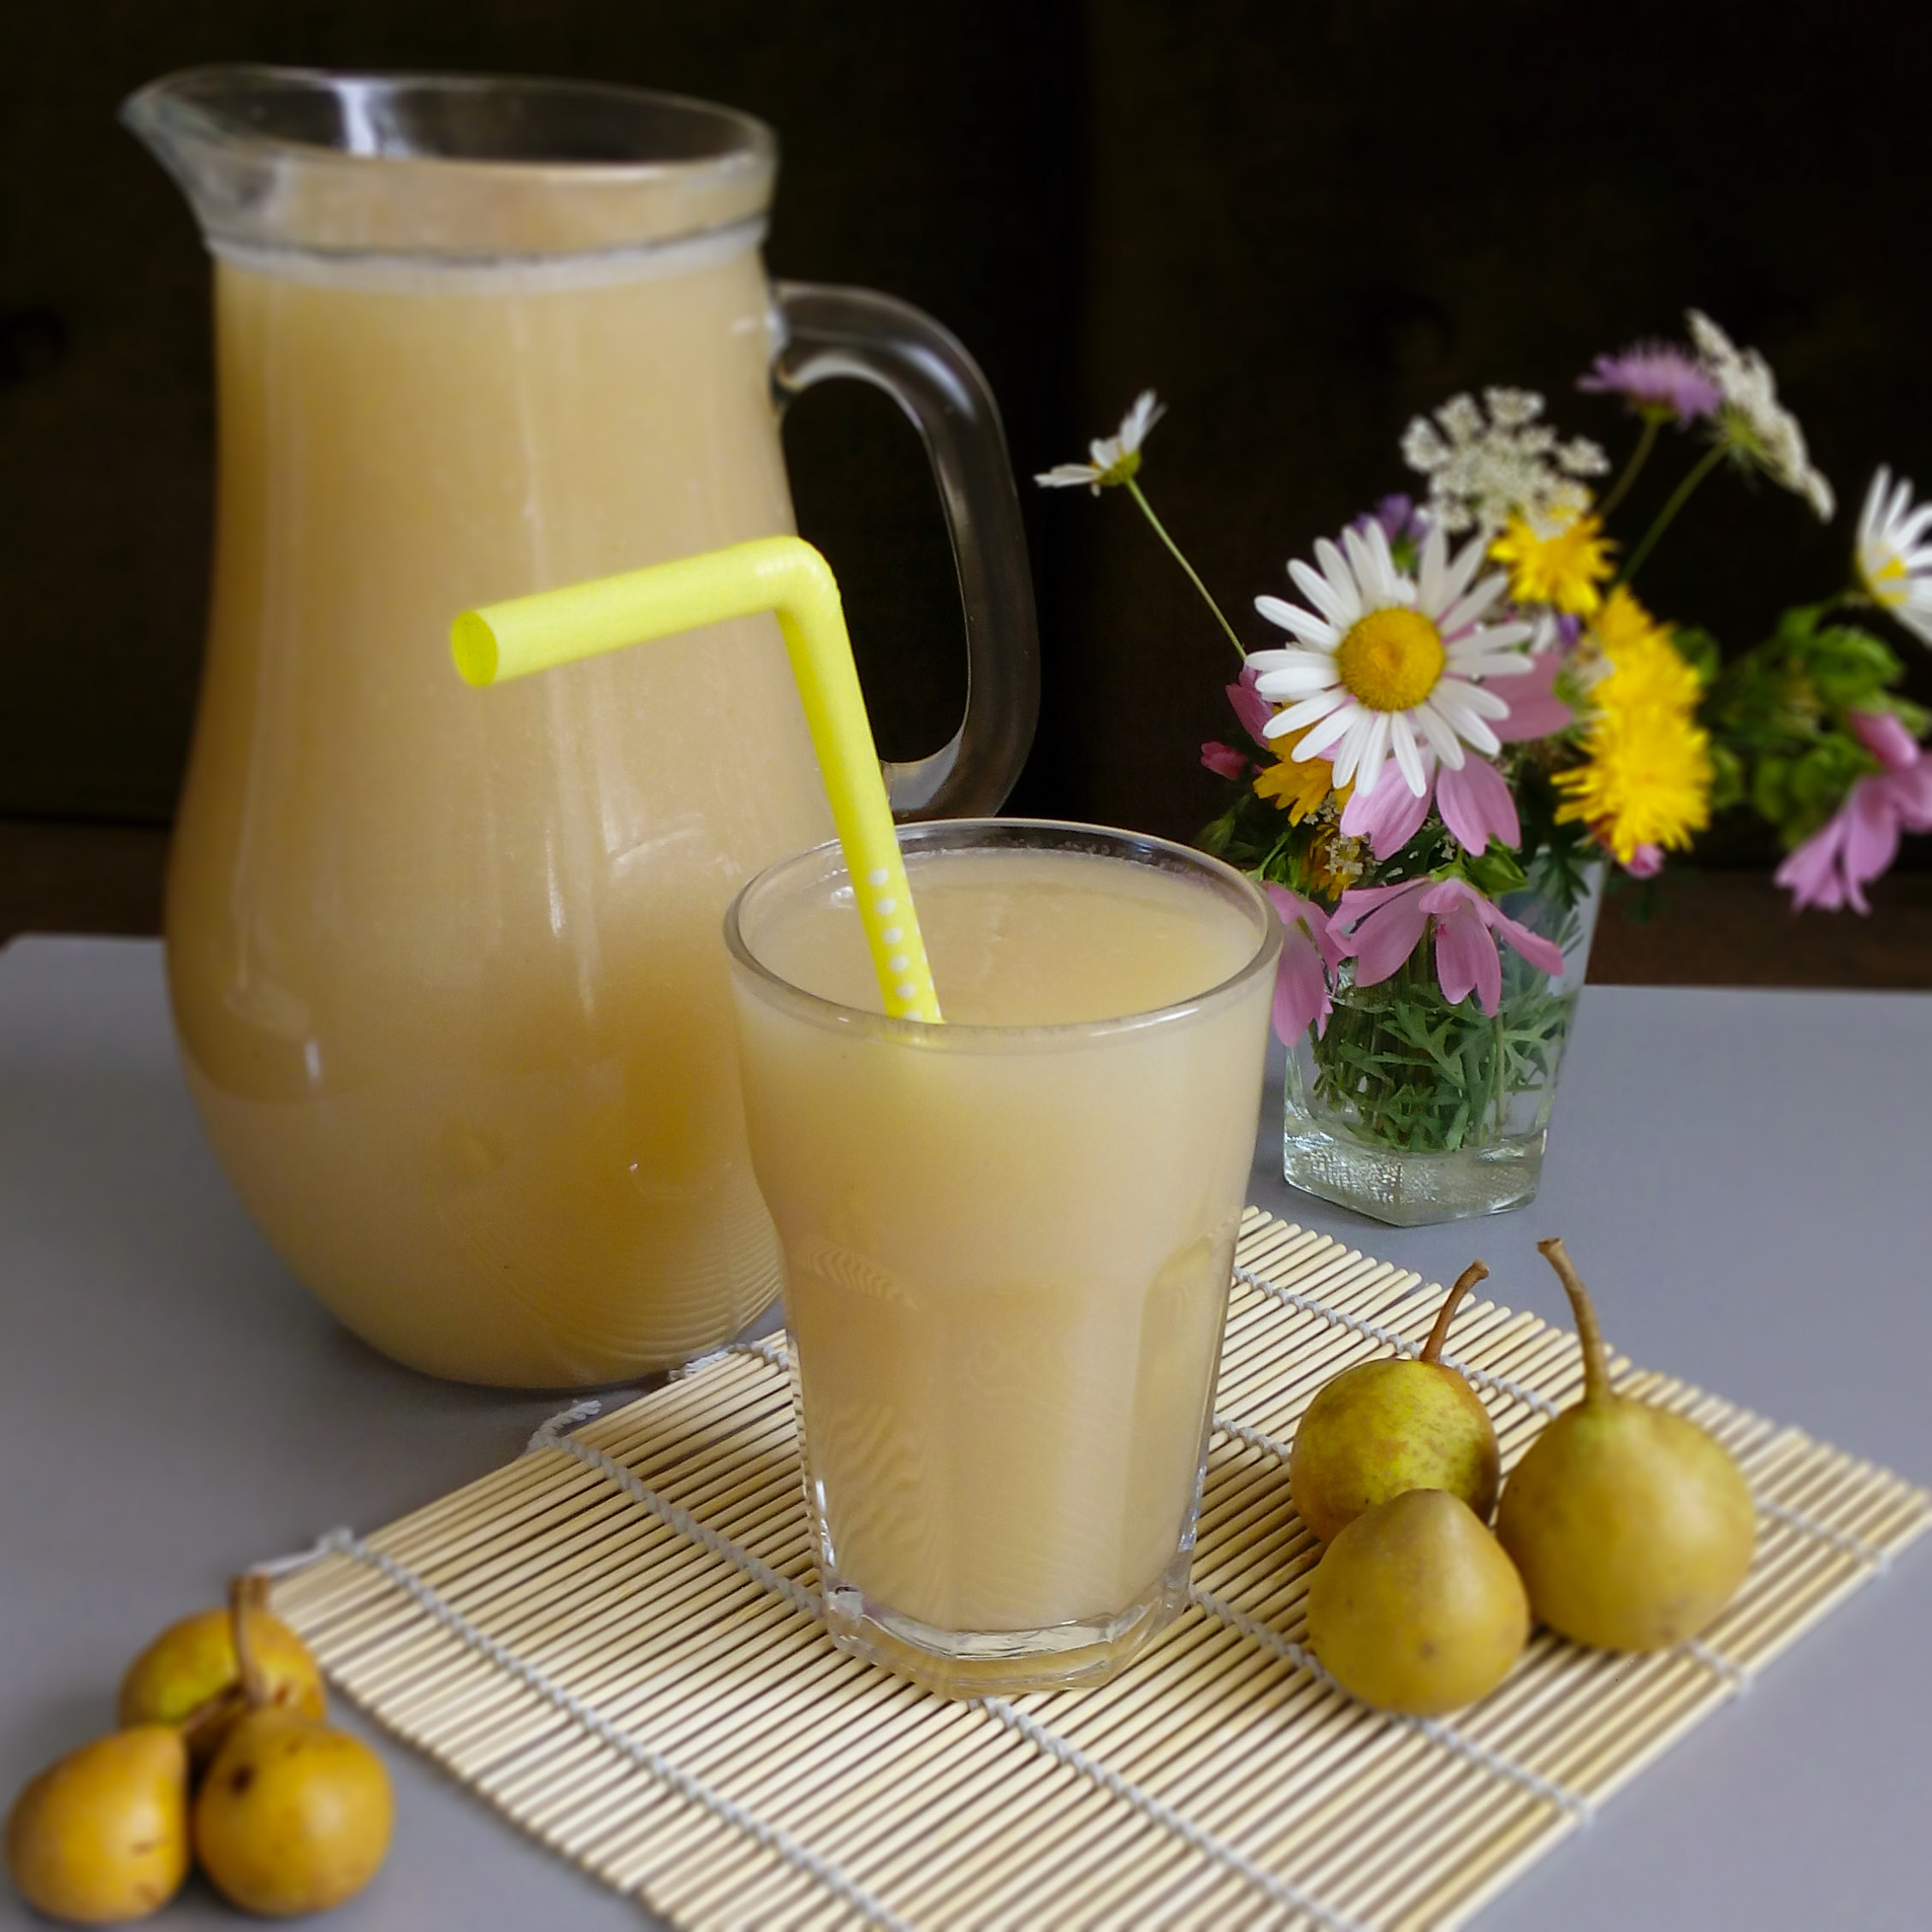 Homemade Pear Juice | Quick & Easy